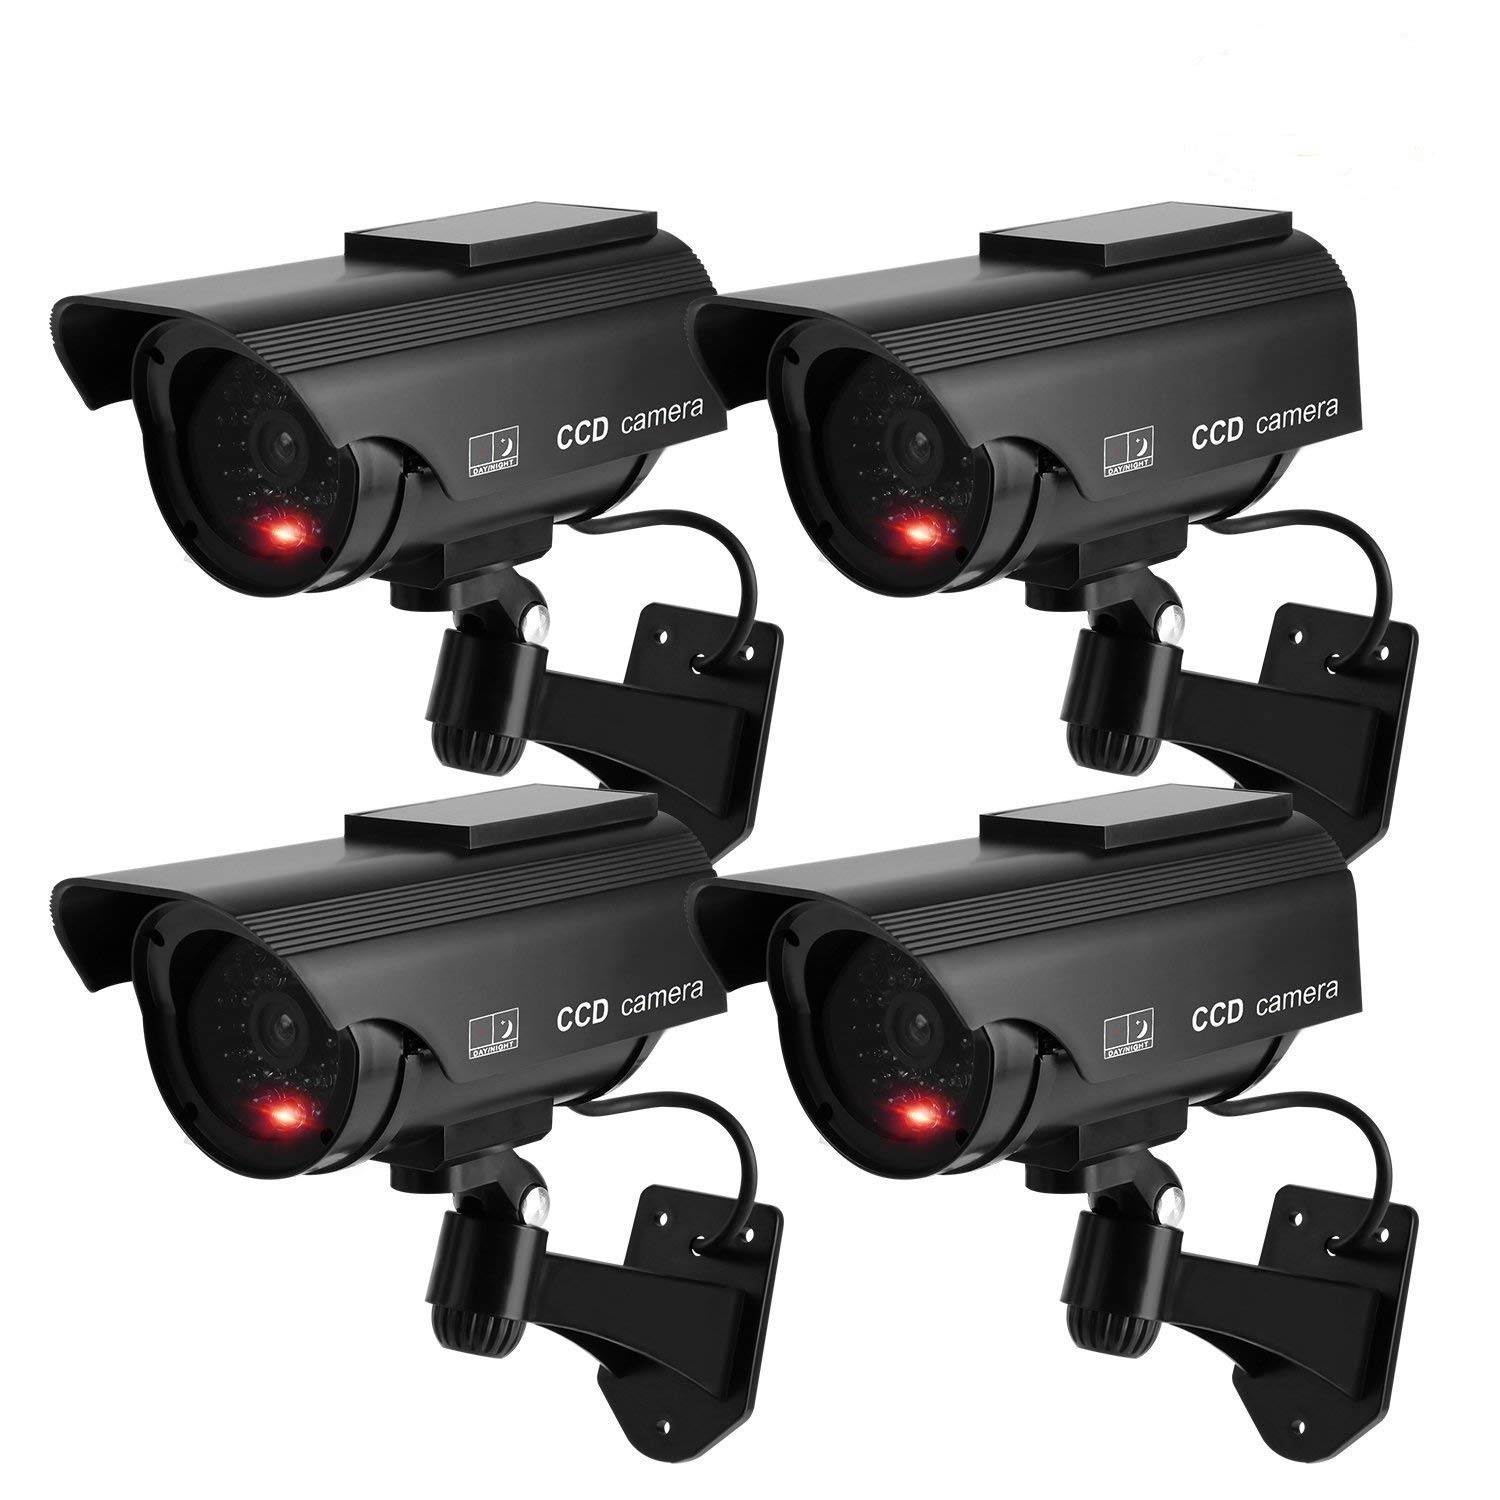 TKOOFN 4 PCS Solar Powered Fake Camera Imitation Dummy Security CCTV Camera Bullet with Flashing LED Light Black by TKOOFN